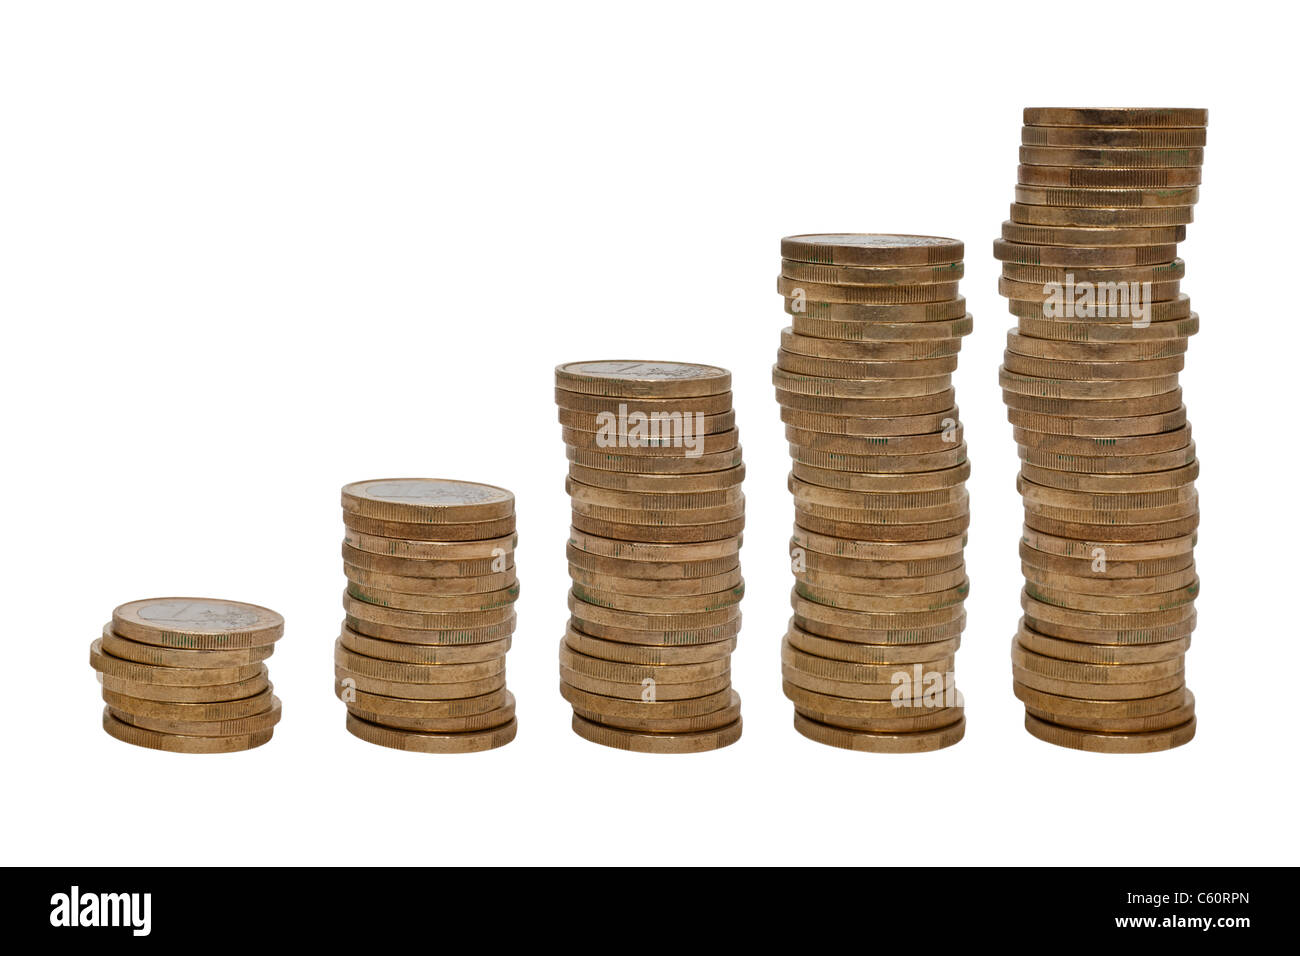 five different high stacks with euro coins next to each other - Stock Image